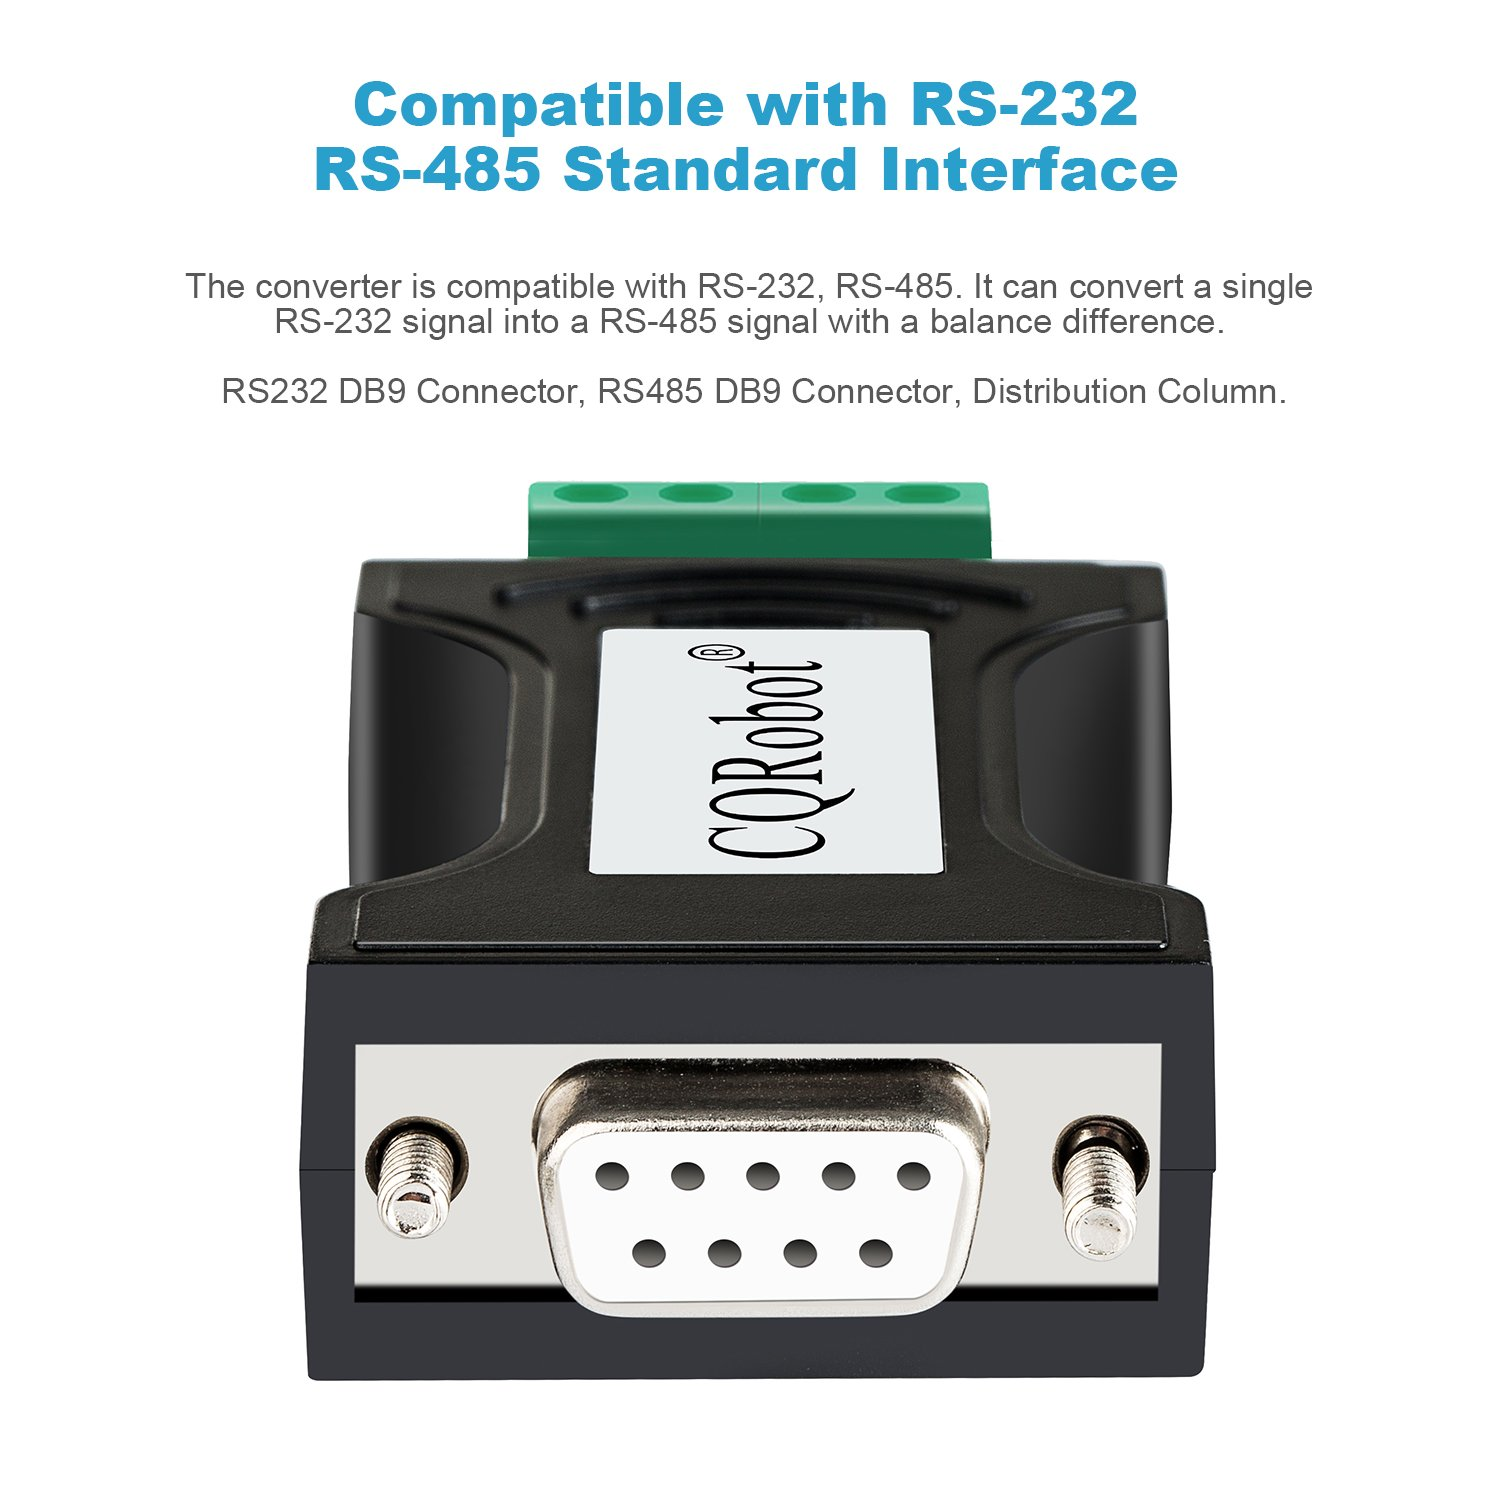 Port Powered Rs232 To Rs485 Converter Adapter For Wire Ethernet Schematic Electronics